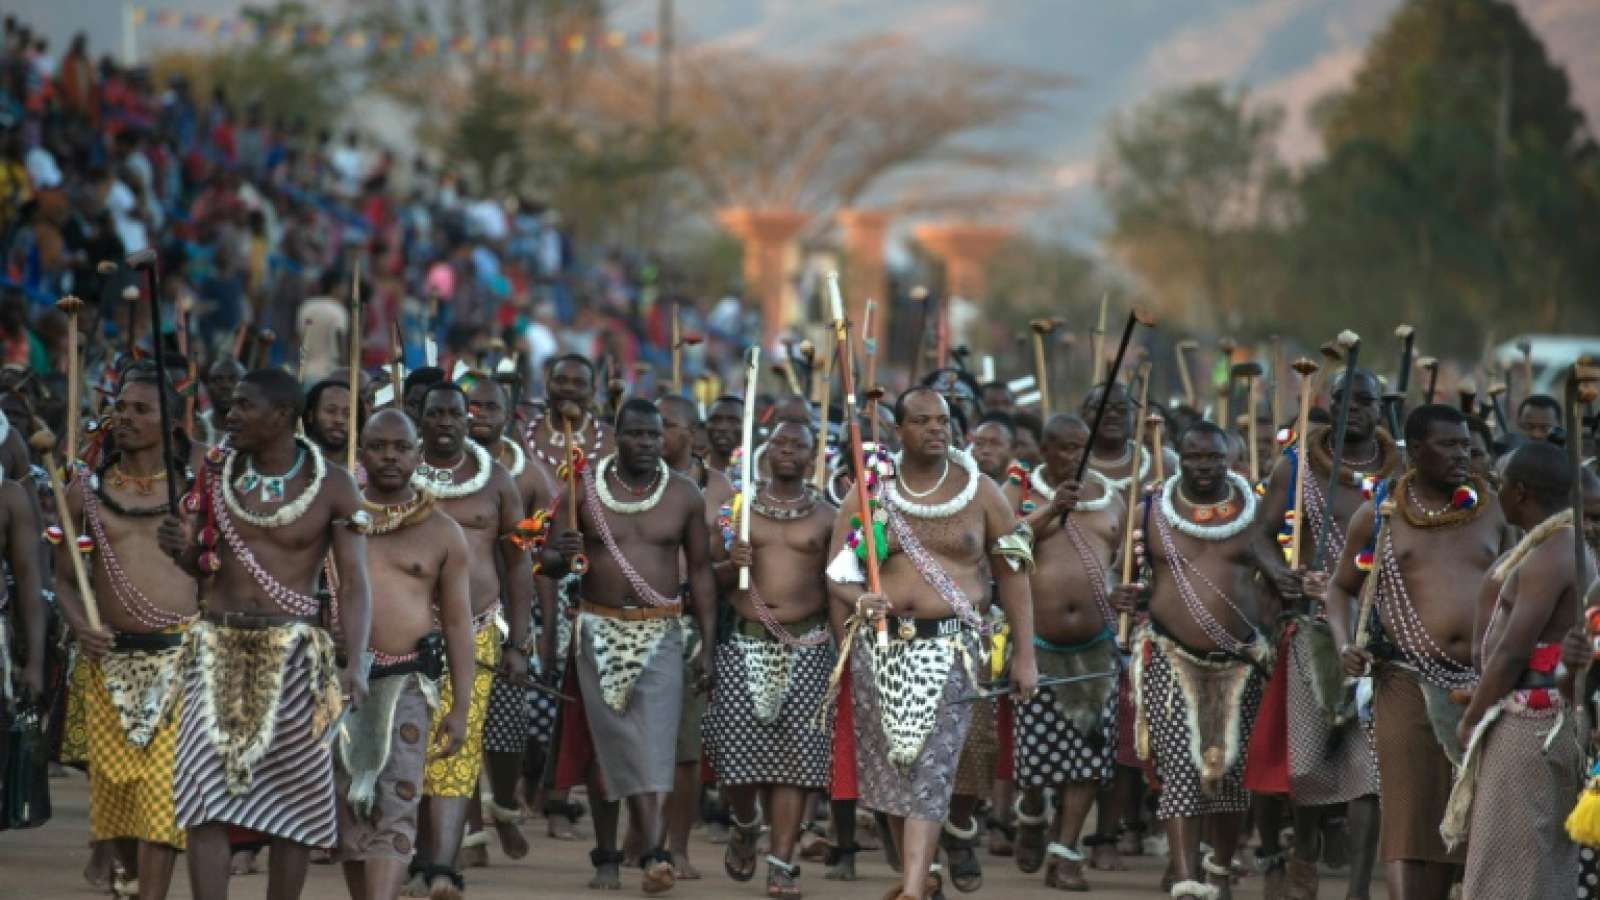 mswati-iii-king-of-swaziland-changes-countrys-name-to-eswatini-13